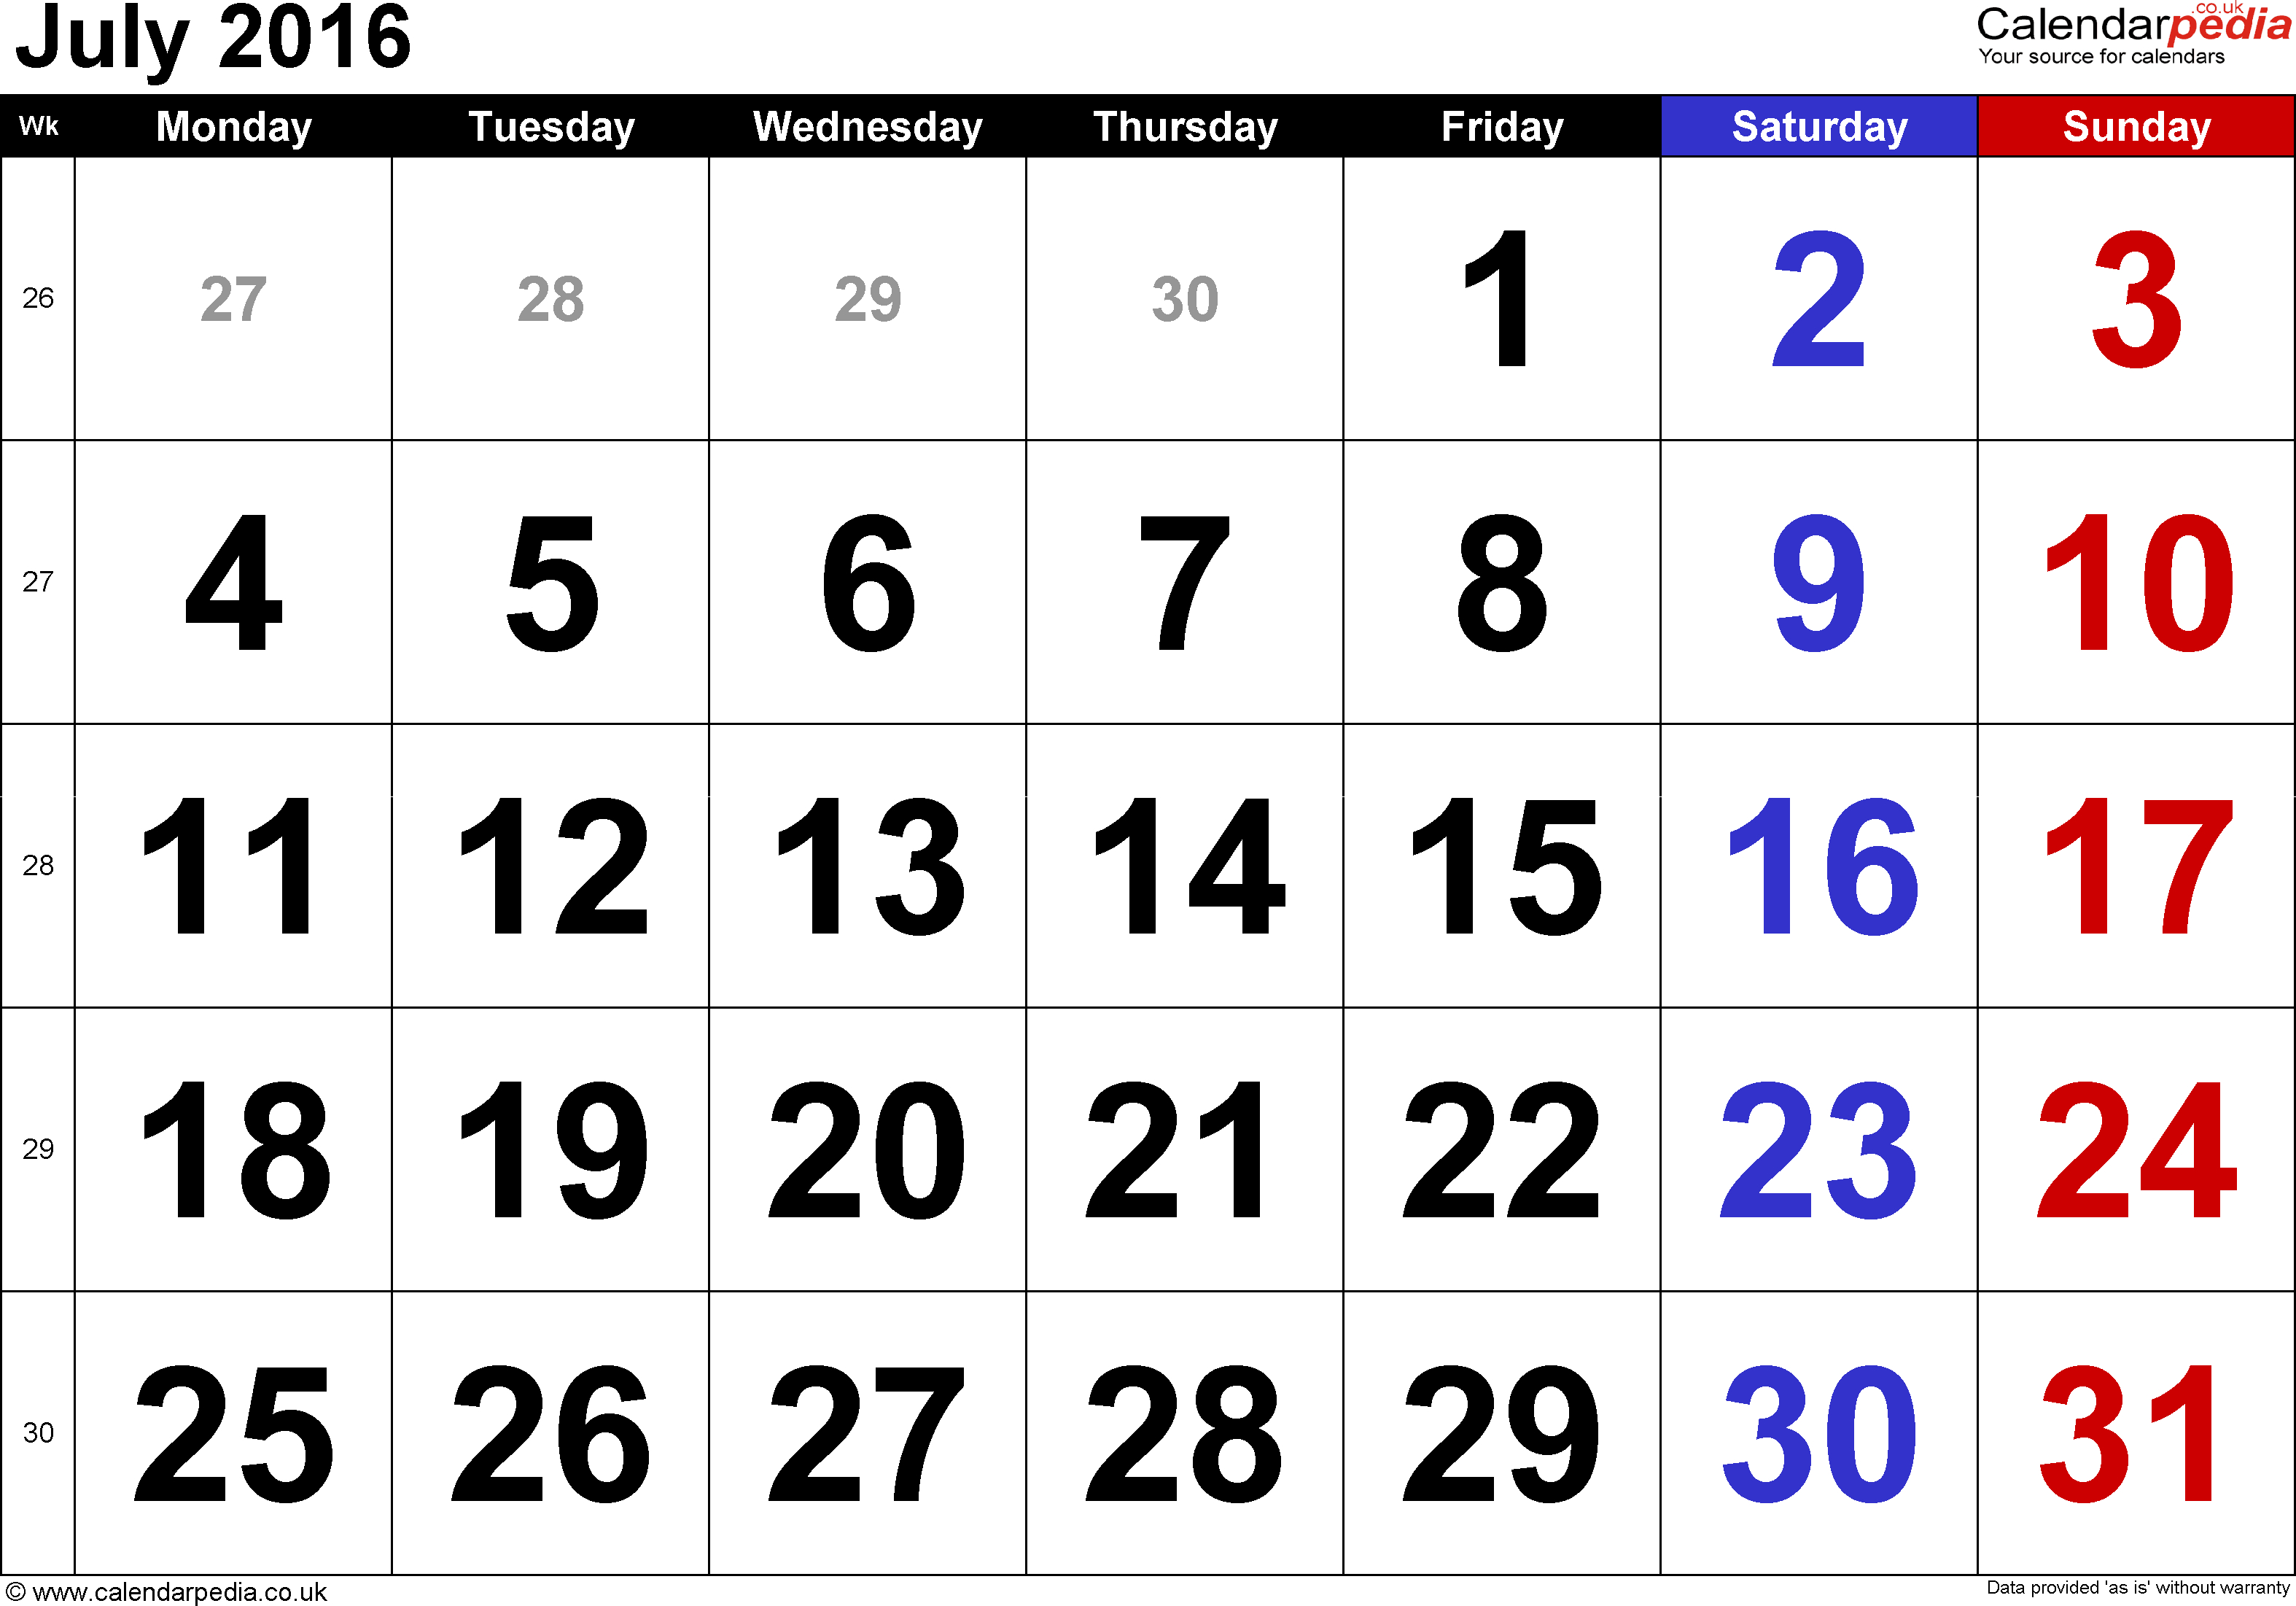 July 2016 Calendar In Word #july2016Calendar #june2016Word with July 2016 Calendar With Holidays